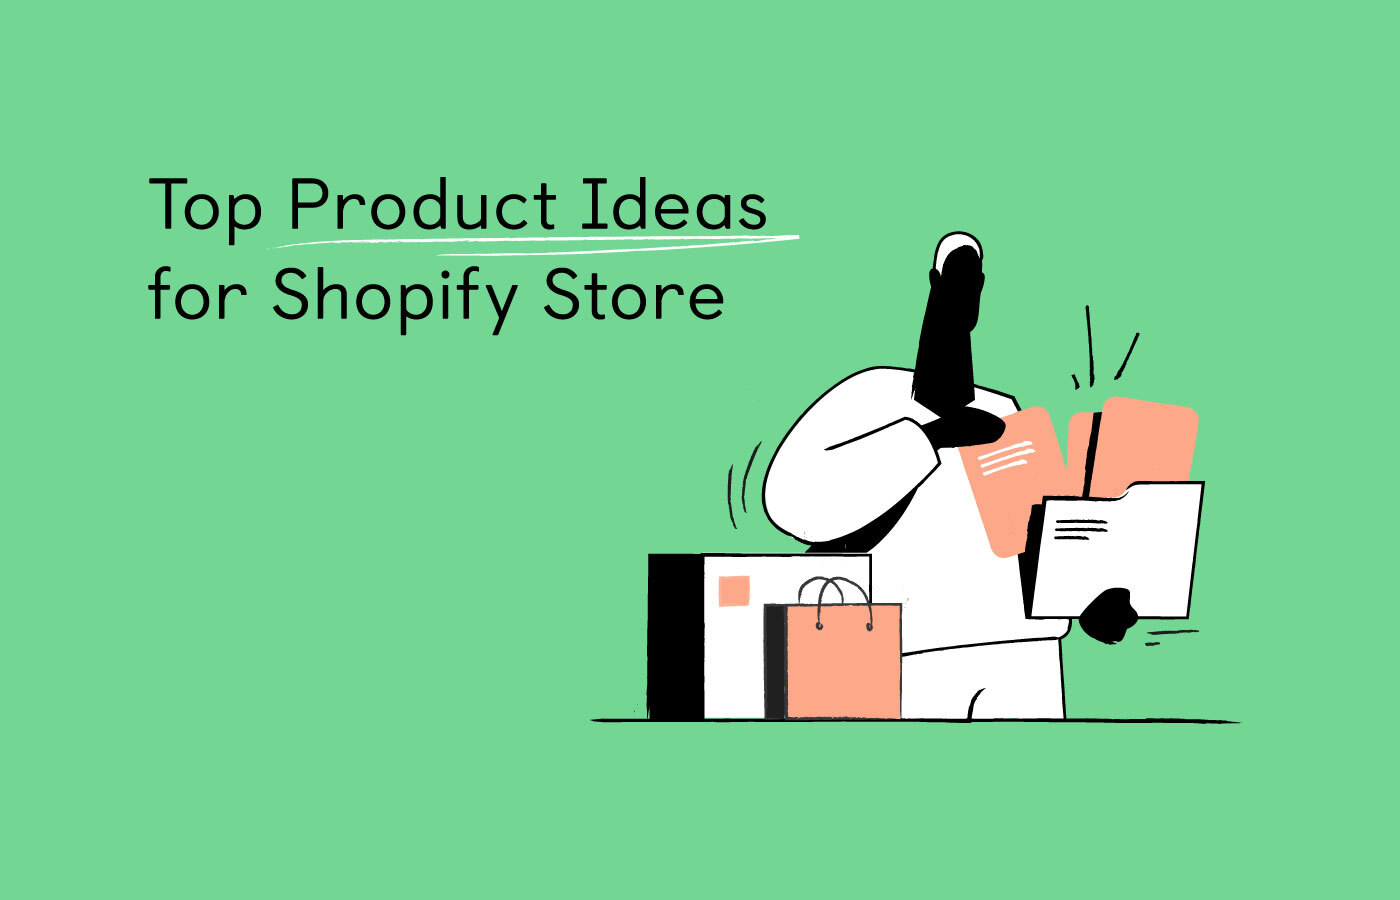 Top Product Ideas for Your Shopify Store in 2021